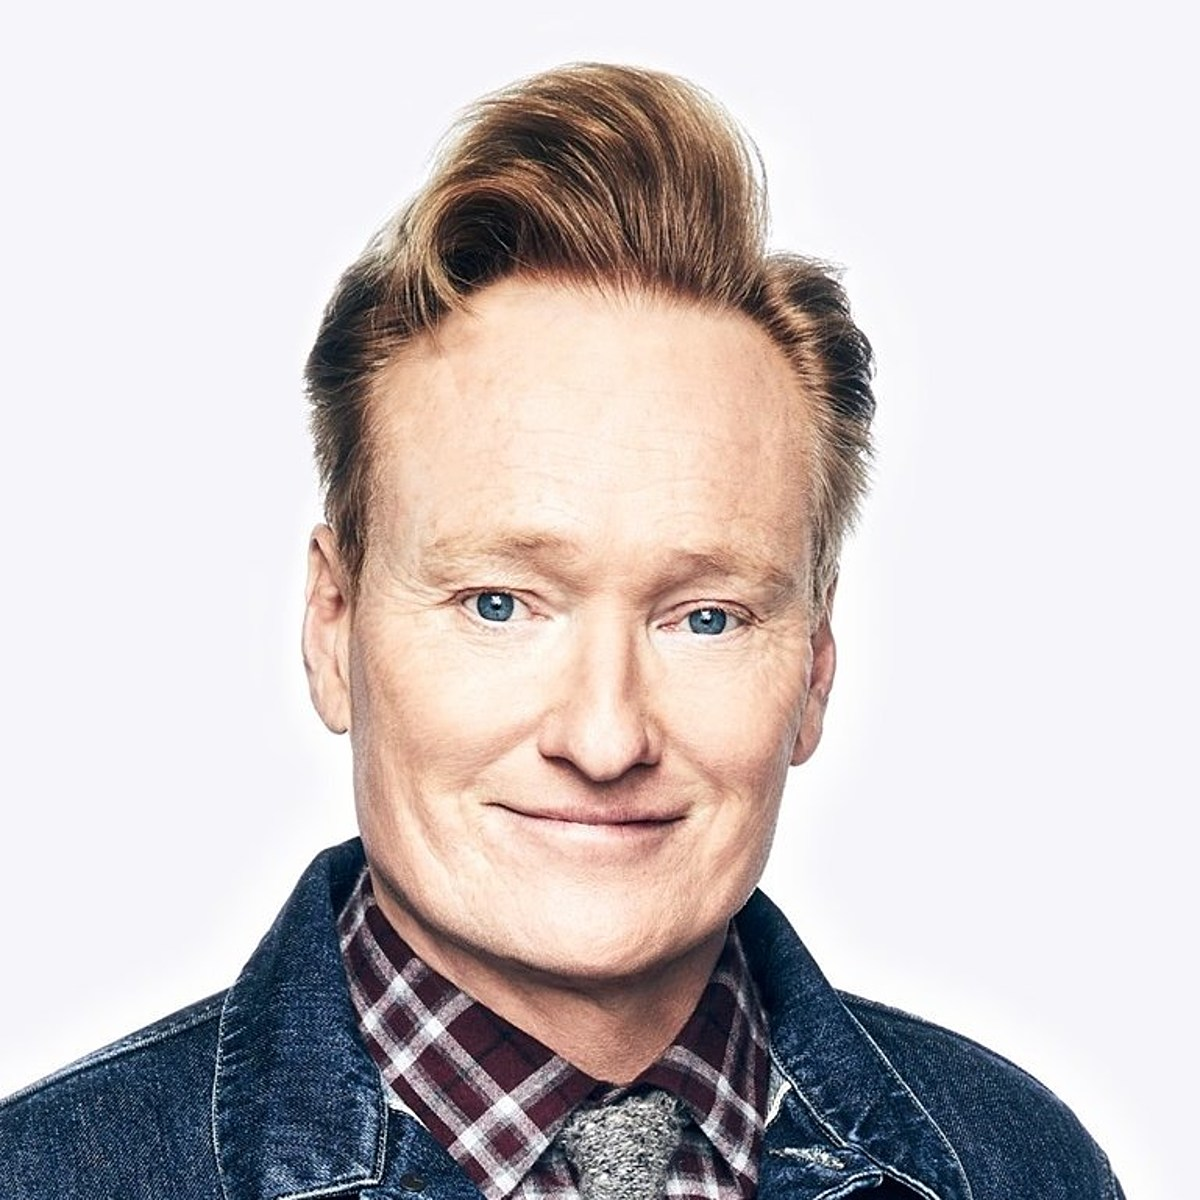 CONAN announces guests for his final 2 weeks